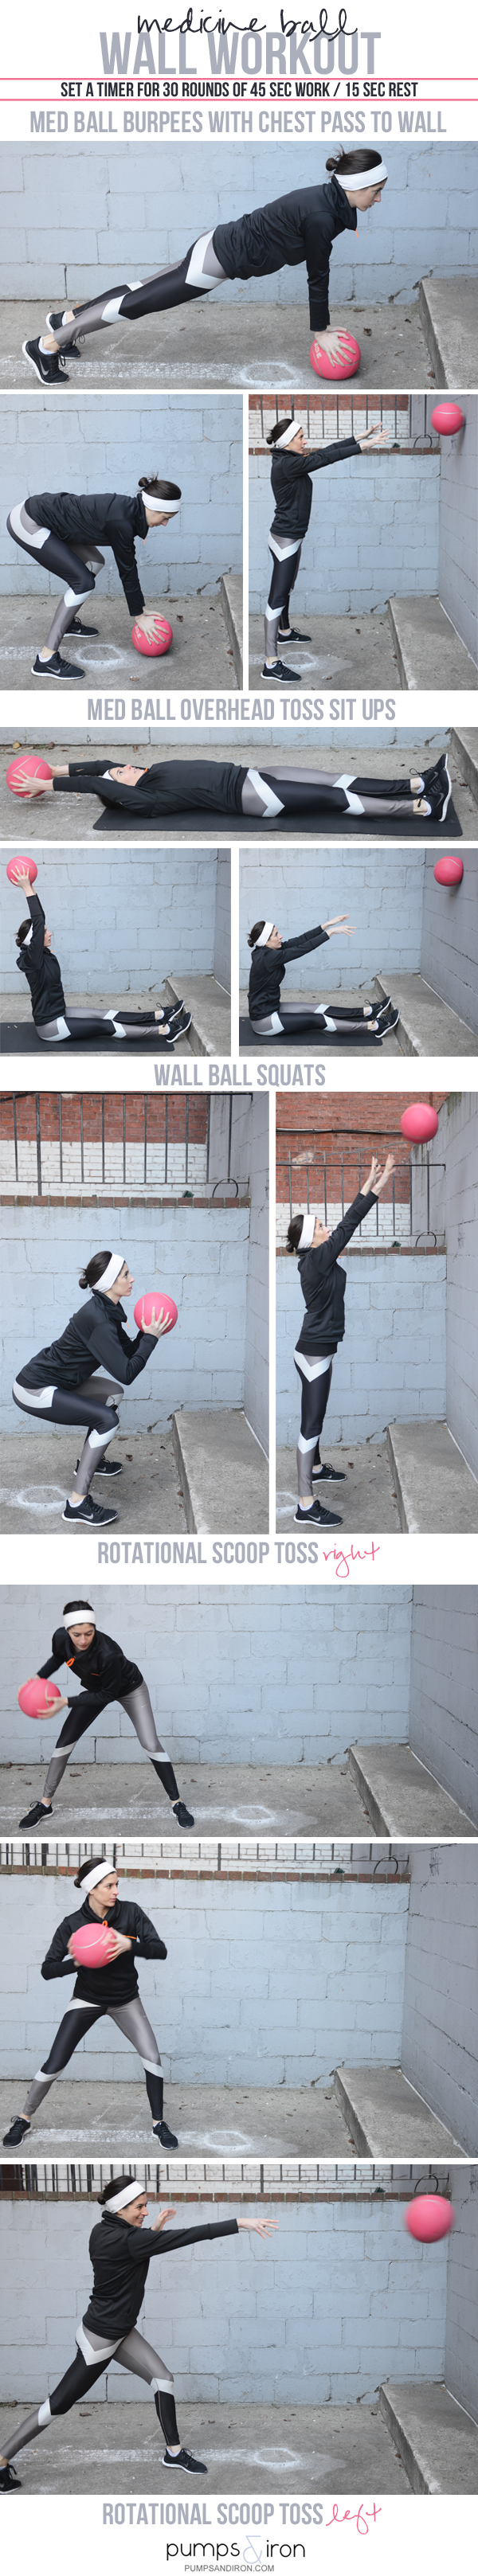 Medicine Ball Wall Workout